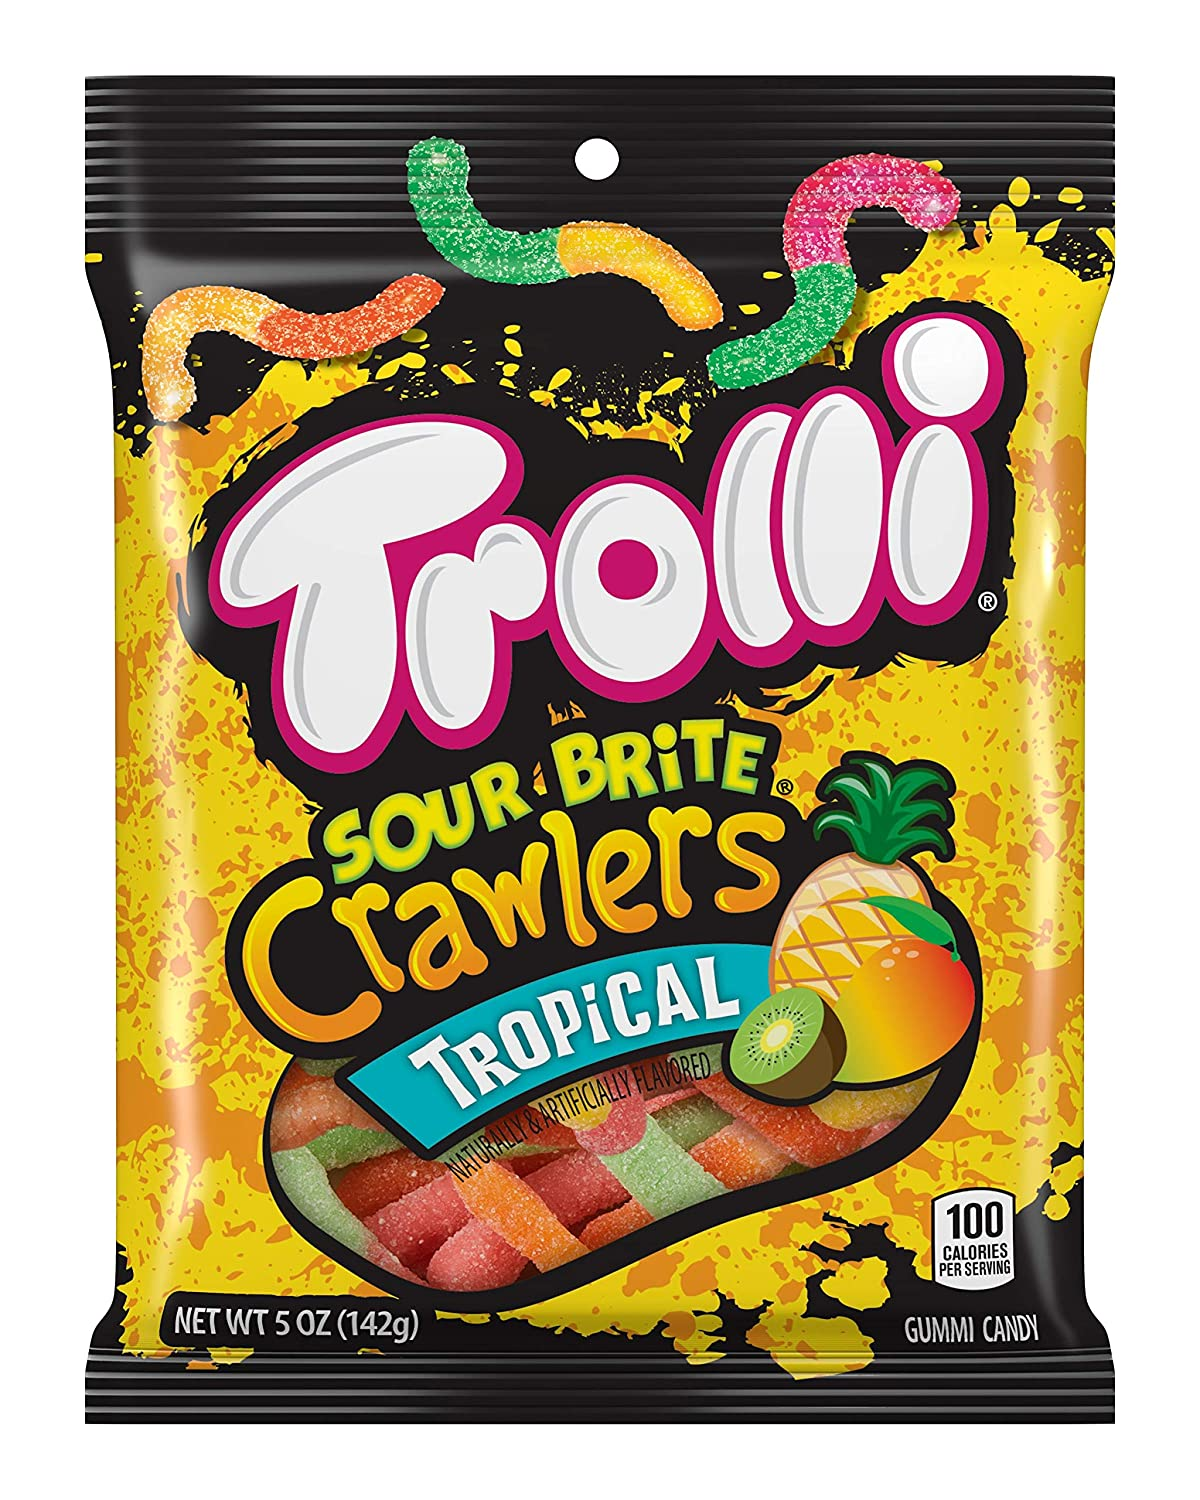 Trolli Sour Brite Crawlers Gummy Candy, Tropical, 5 Ounce, Pack of 12